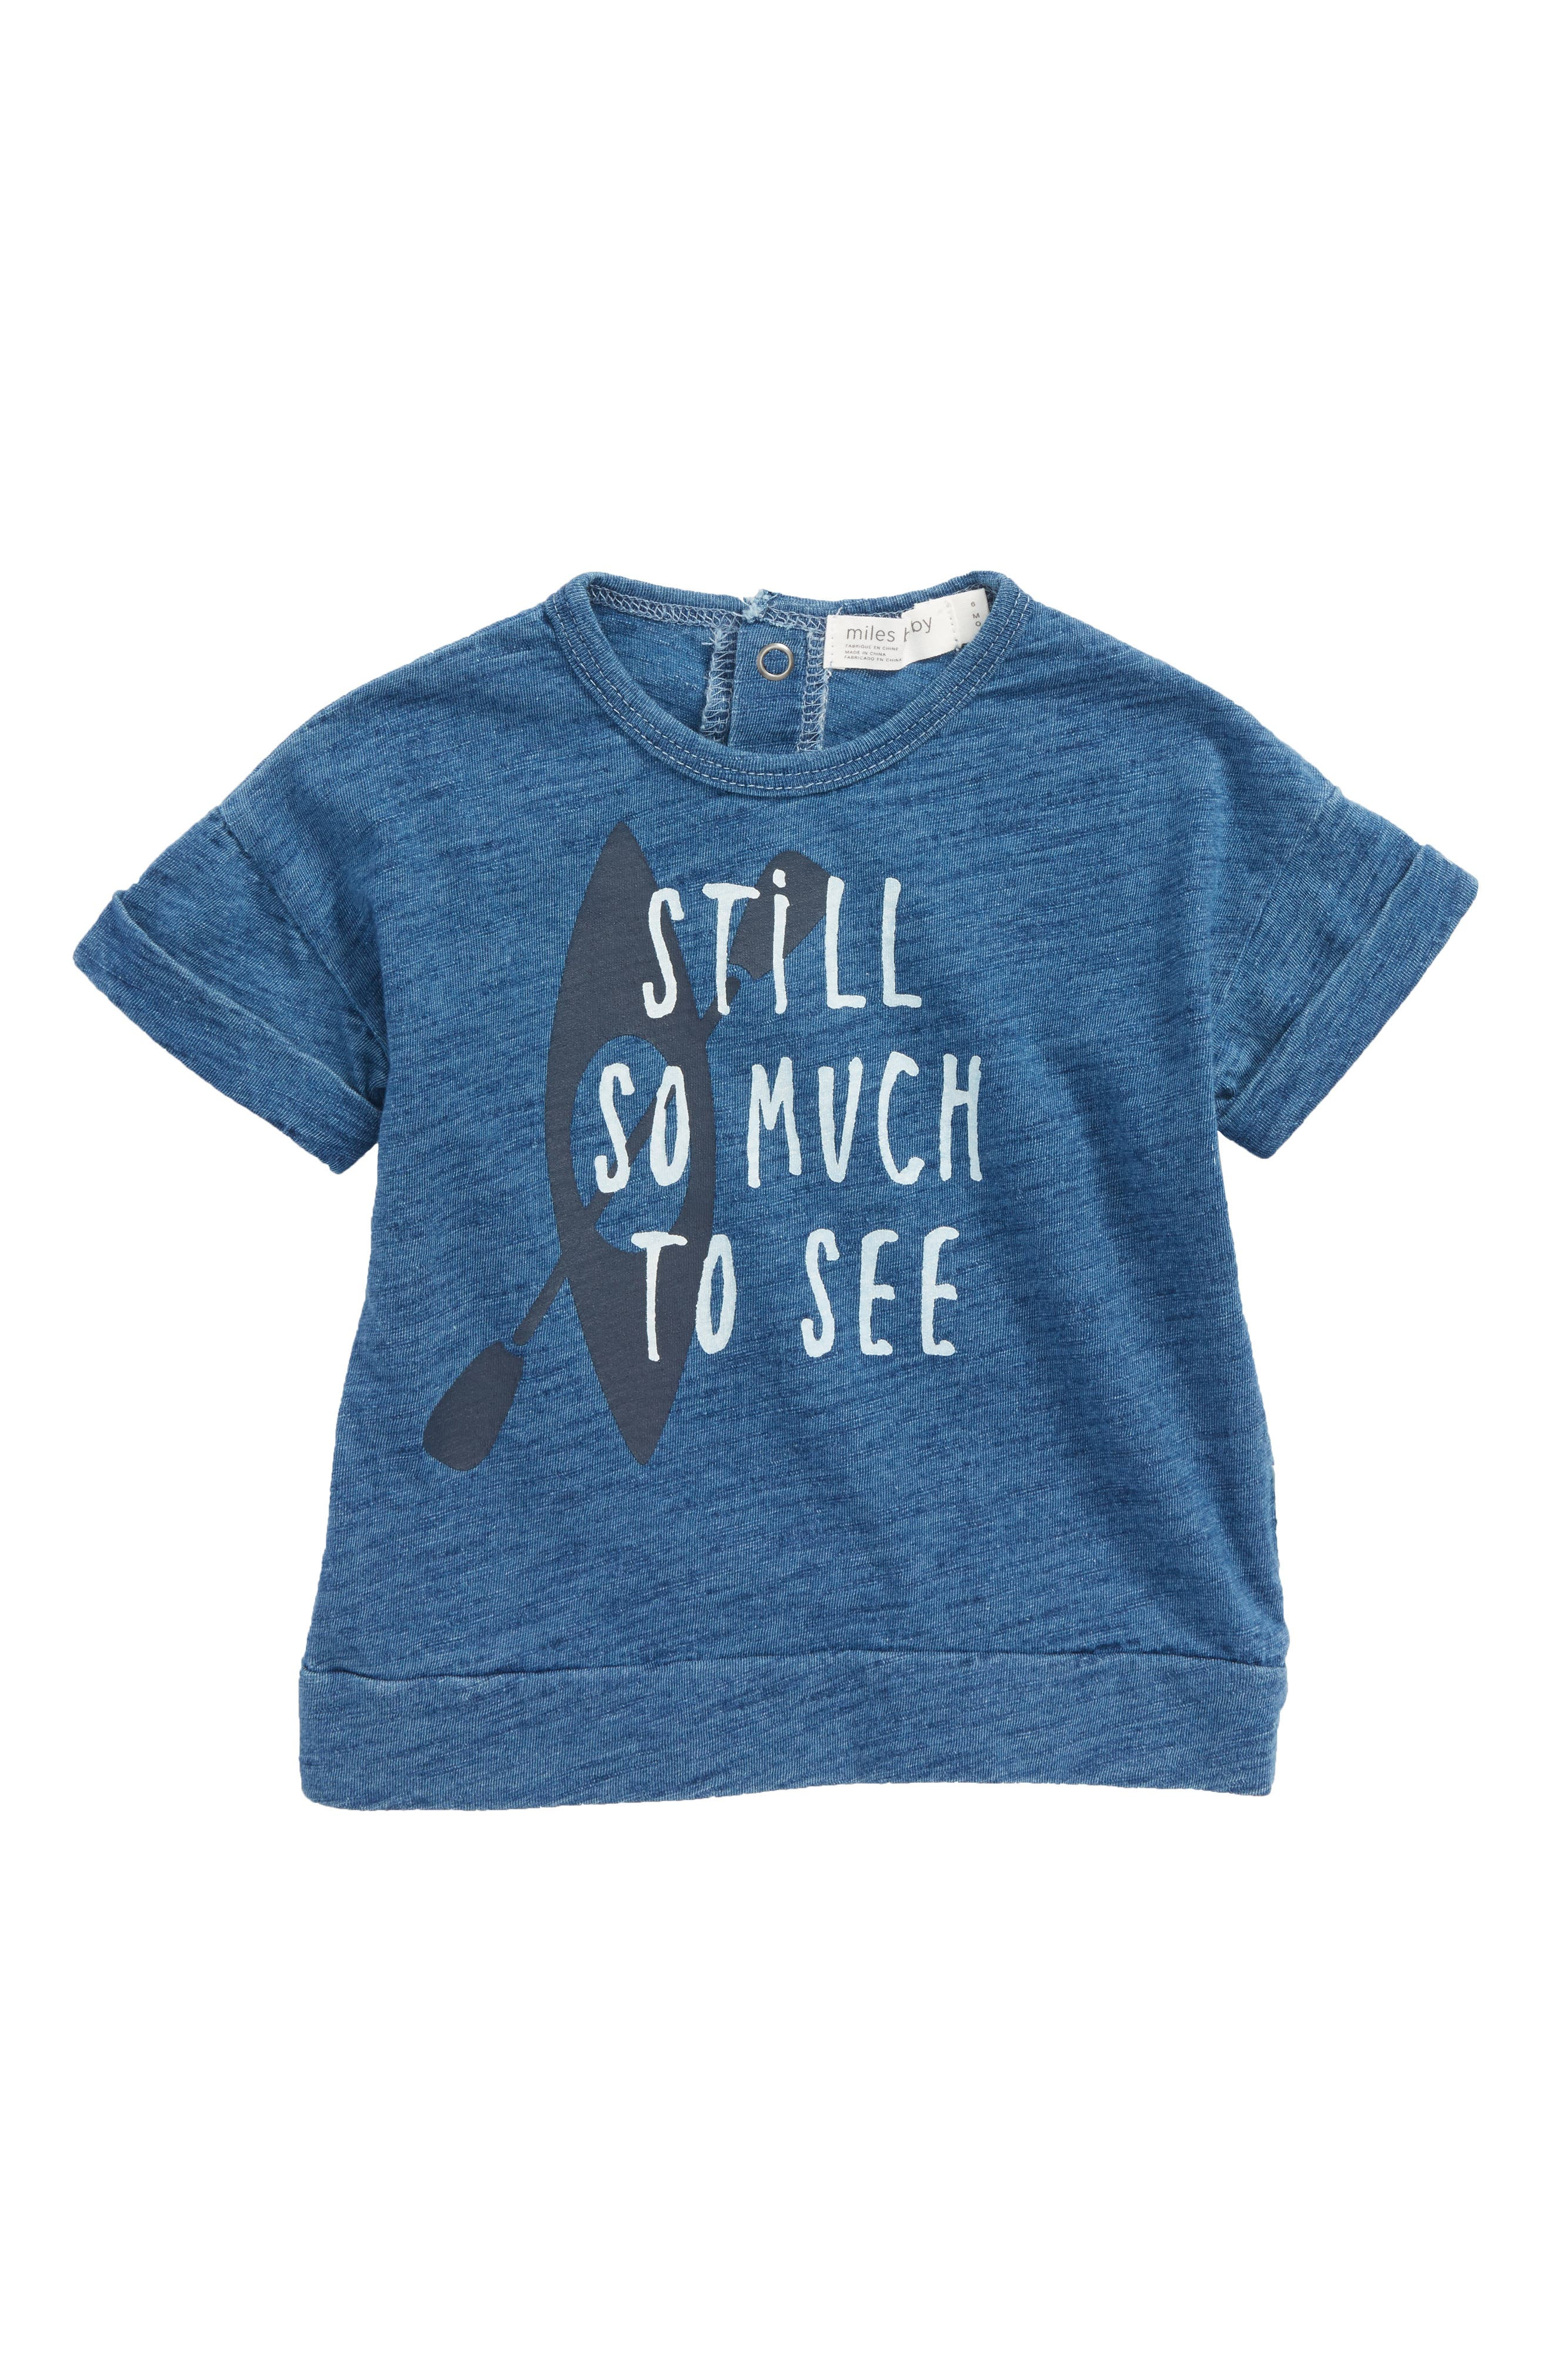 So Much To See T-Shirt,                             Main thumbnail 1, color,                             Blue